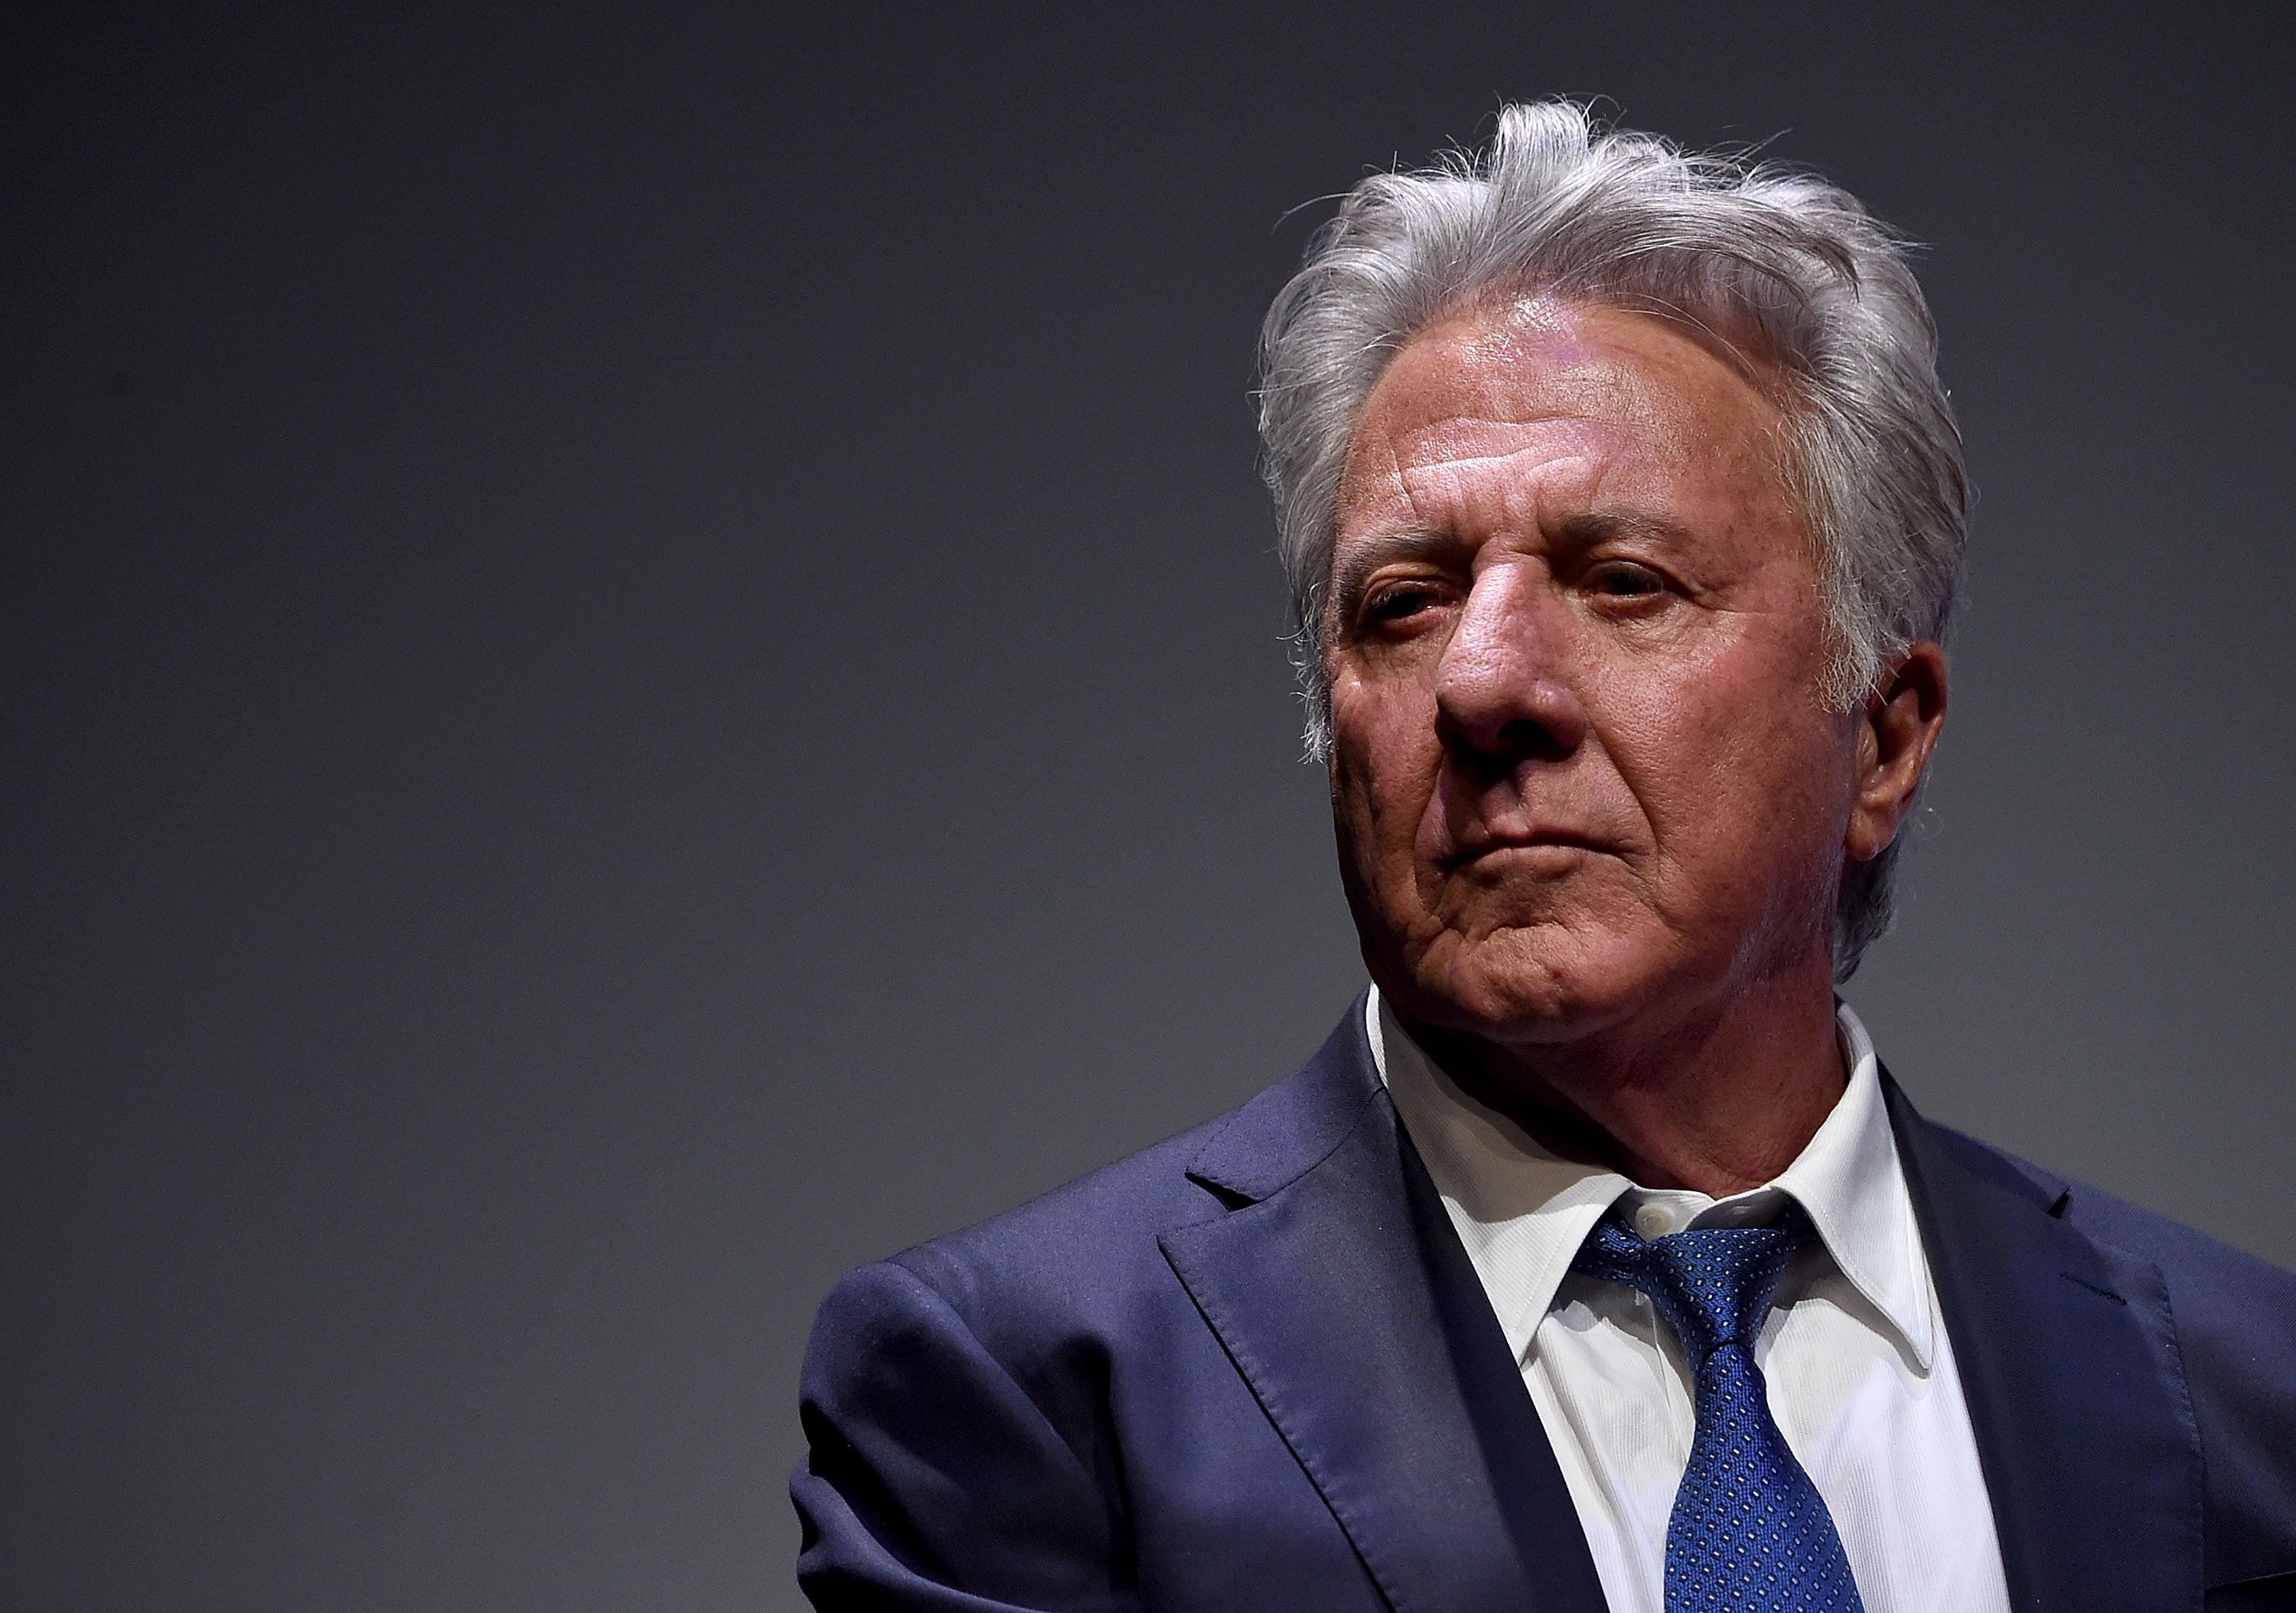 NEW YORK, NY - OCTOBER 01: Dustin Hoffman attends the 55th New York Film Festival - 'Meyerowitz Stories' at Alice Tully Hall on October 1, 2017 in New York City.  (Photo by Jamie McCarthy/Getty Images)